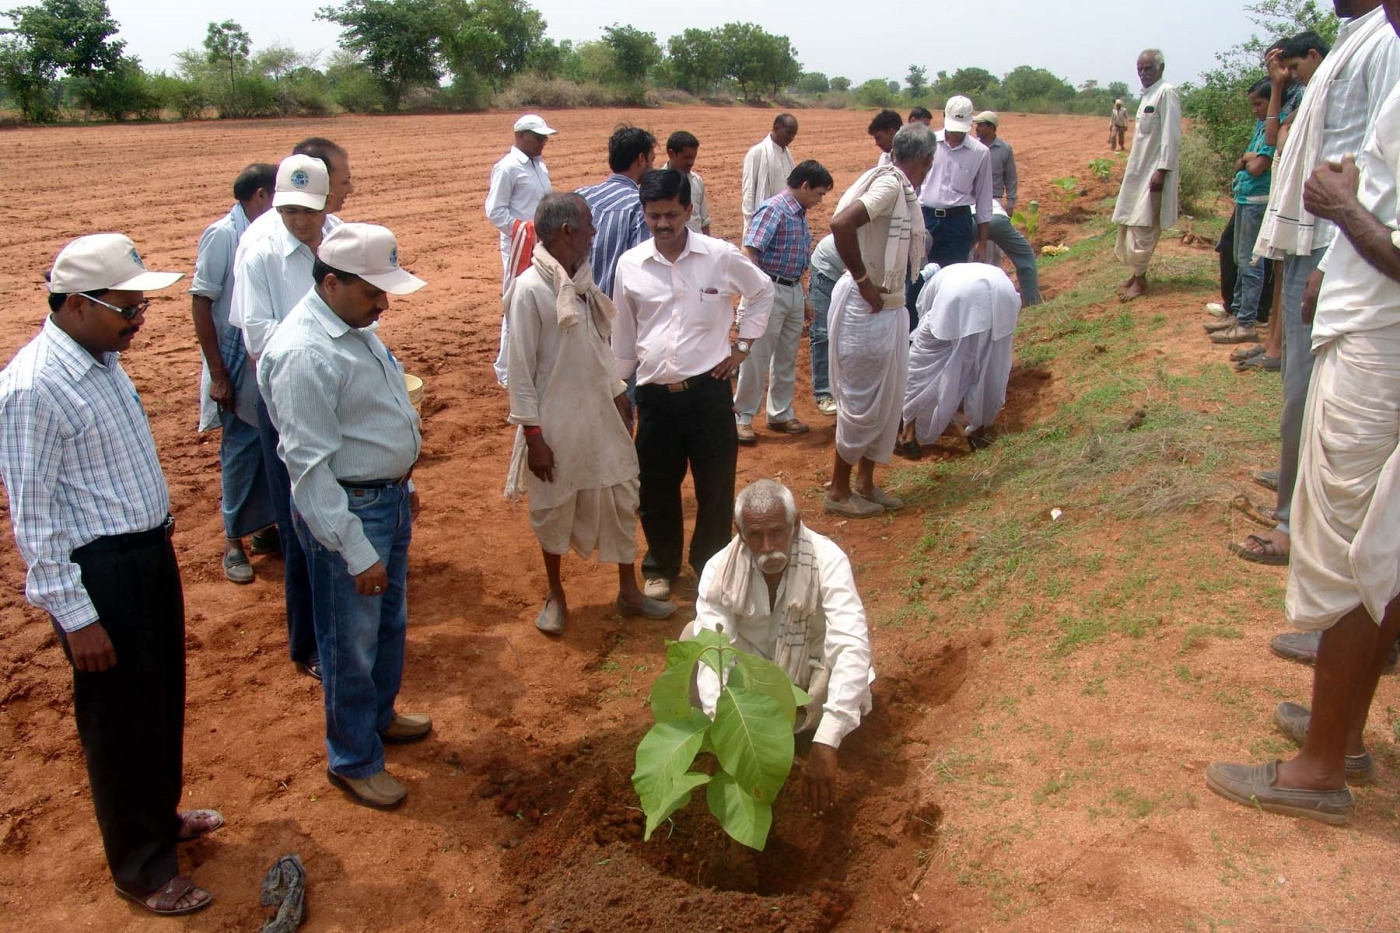 agricultural practices in madhya pradesh